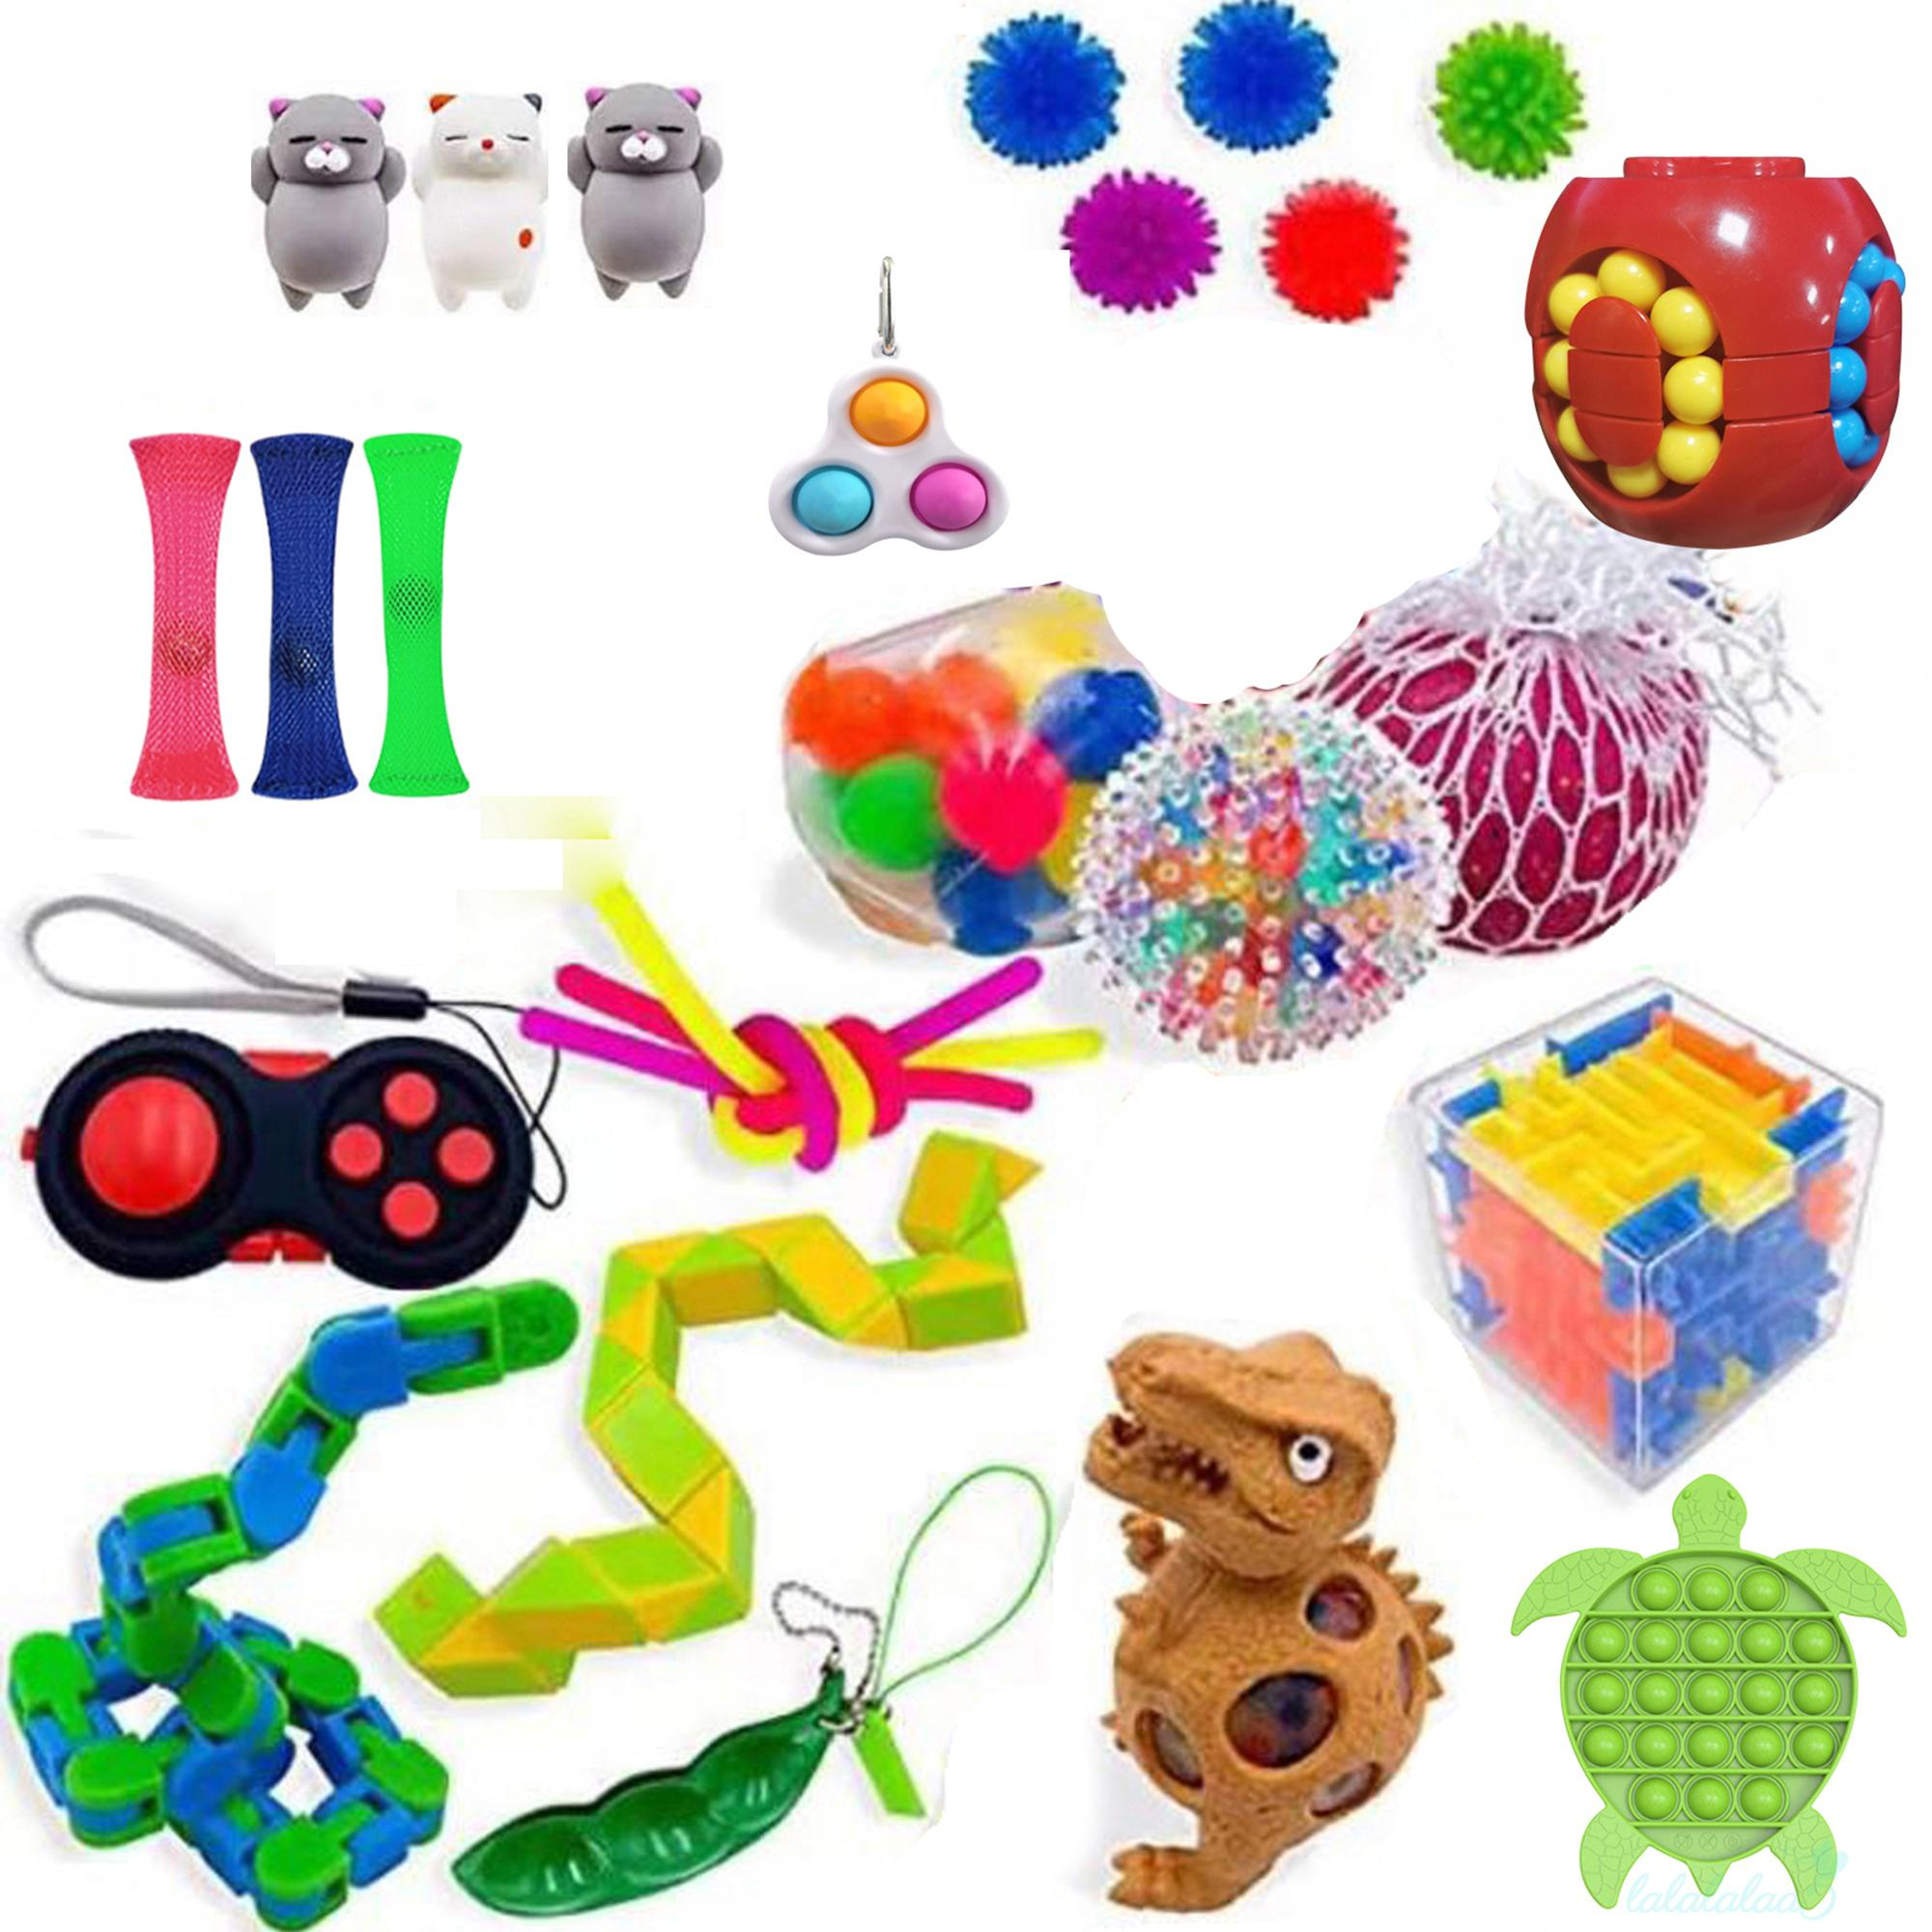 LL5-Cube Top Toy Set, Autism Needs Stress Reliever Anxiety Relief Toys, Special Toys Assortment for Birthday Party